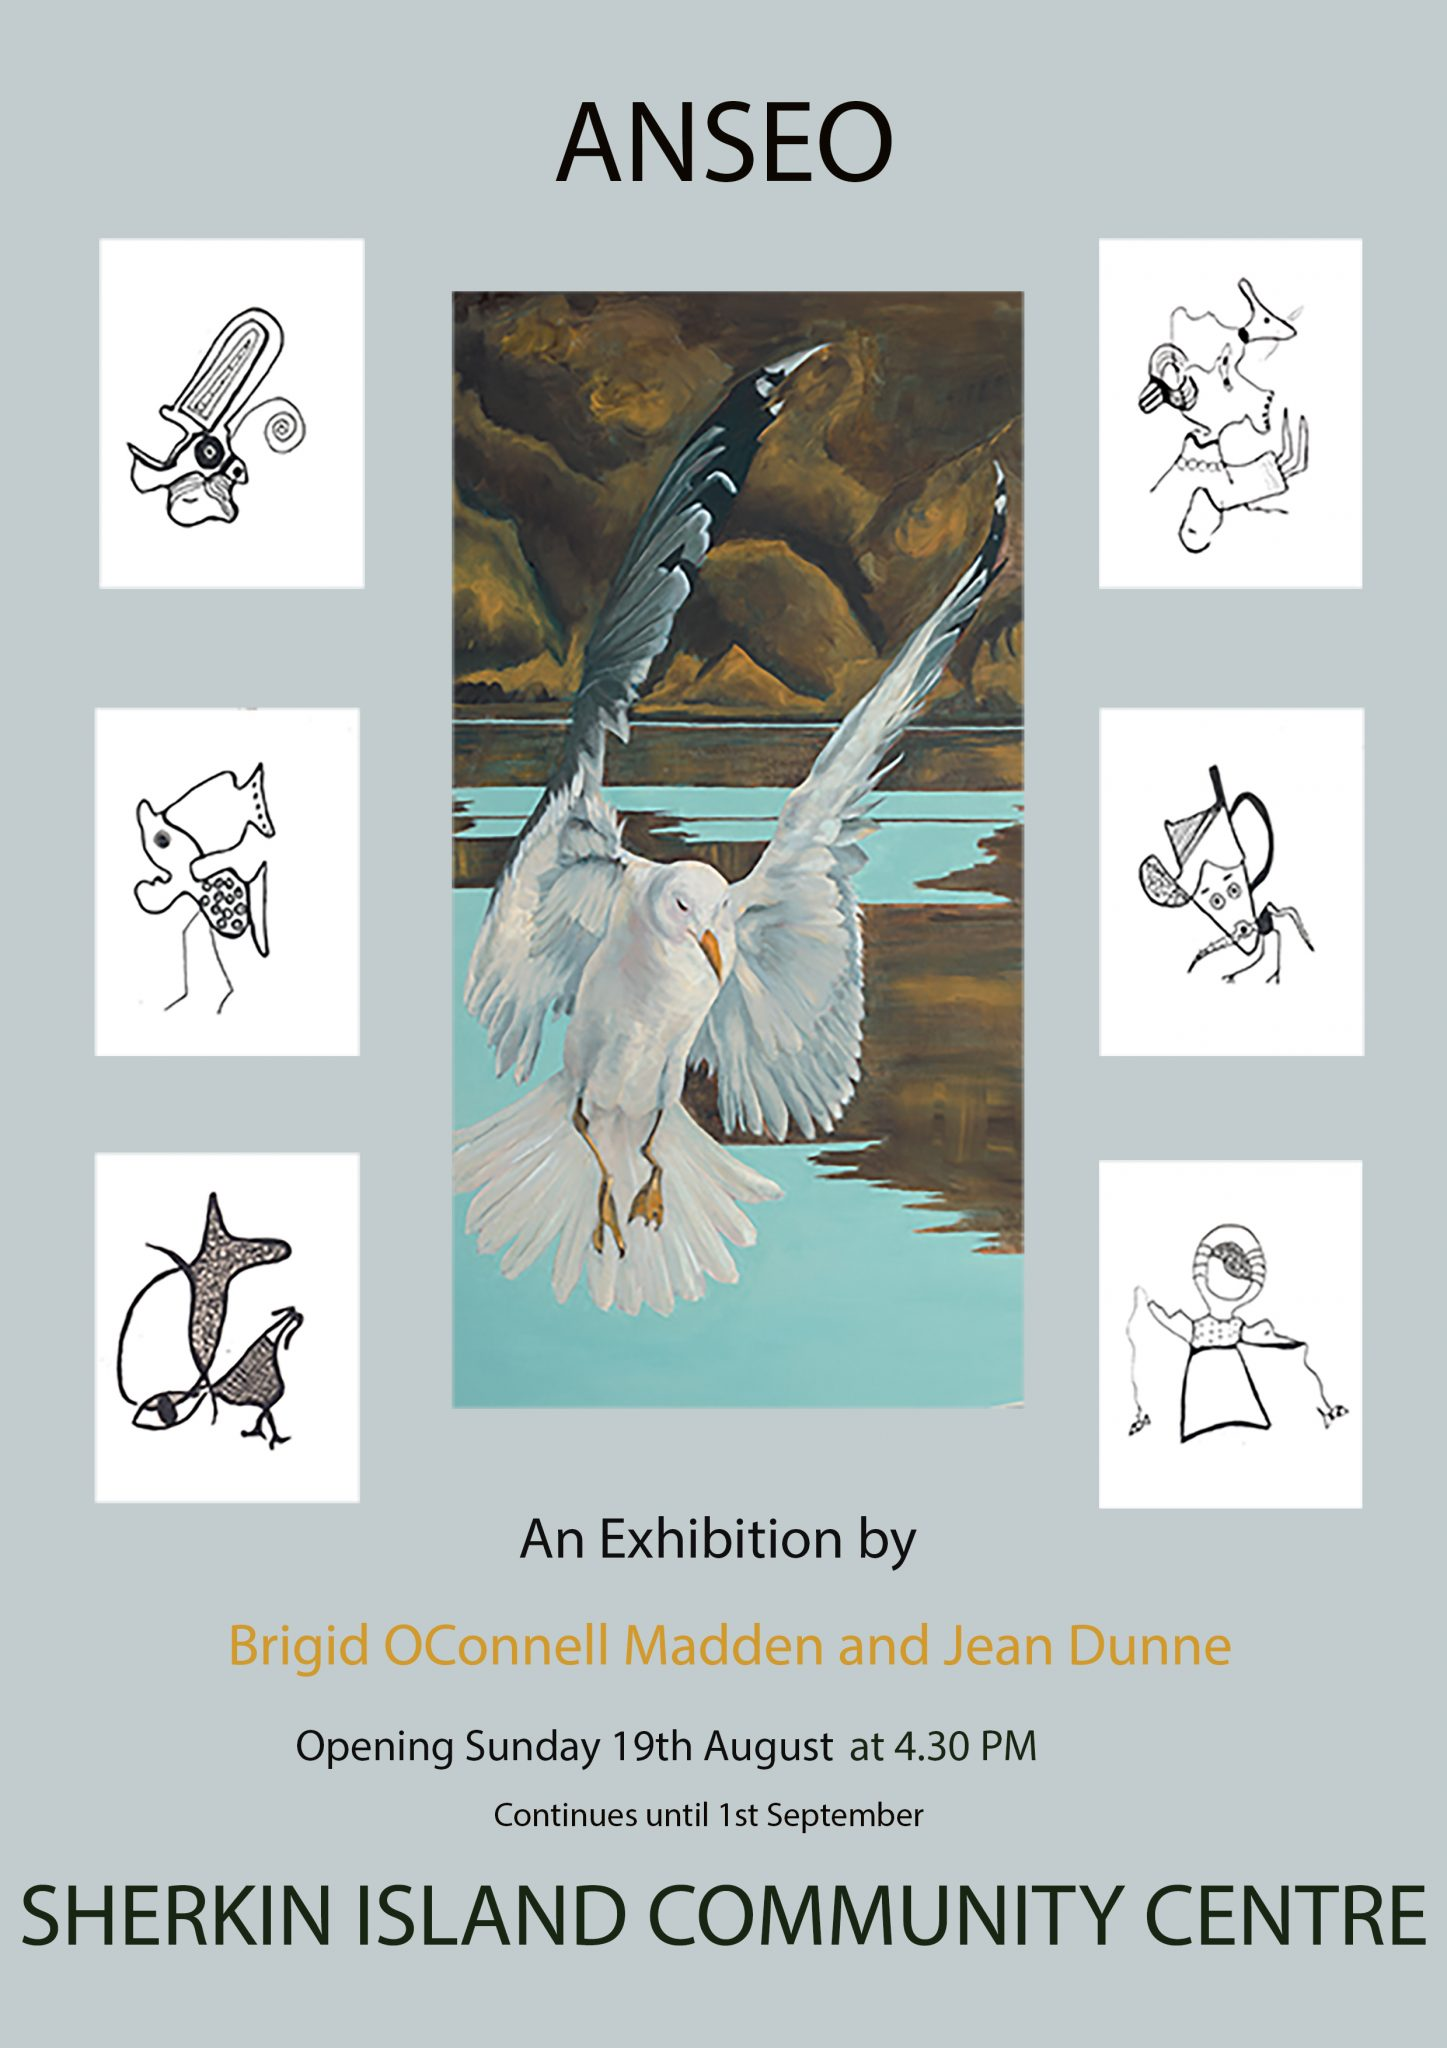 Anseo – An Exhibition by Brigid O'Connell Madden and Jean Dunne